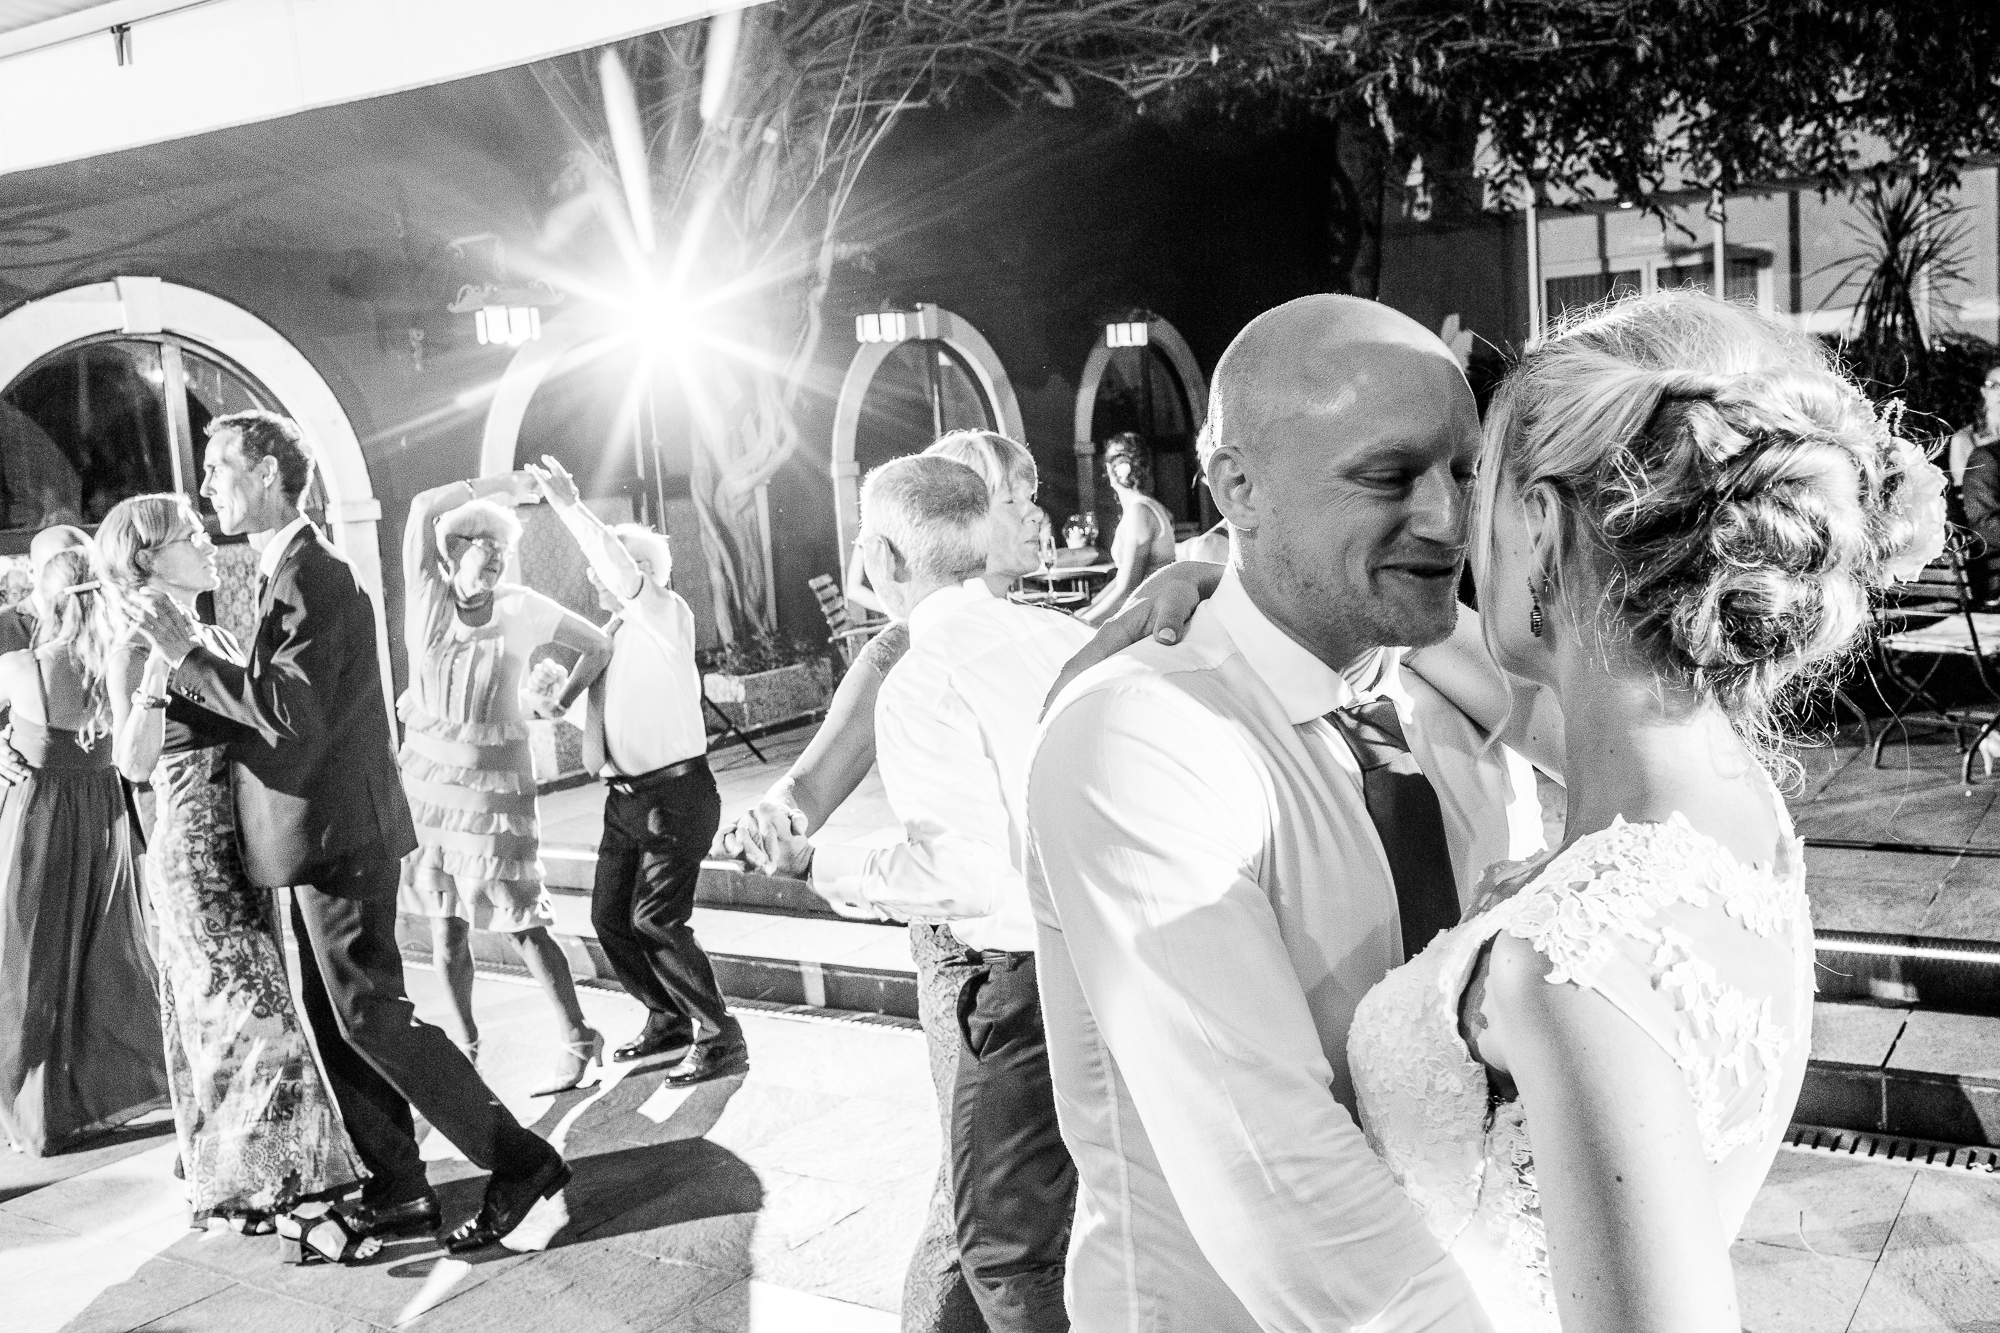 Hochzeitstanz, location, Gardasee, tanz, wedding, verliebt, nah, glücklich, verheiratet, braut, Bräutigam, Hochzeitspaar, couple, in love, dancefloor, music, black and white, reportage, Fotografie, Steffen löffler,